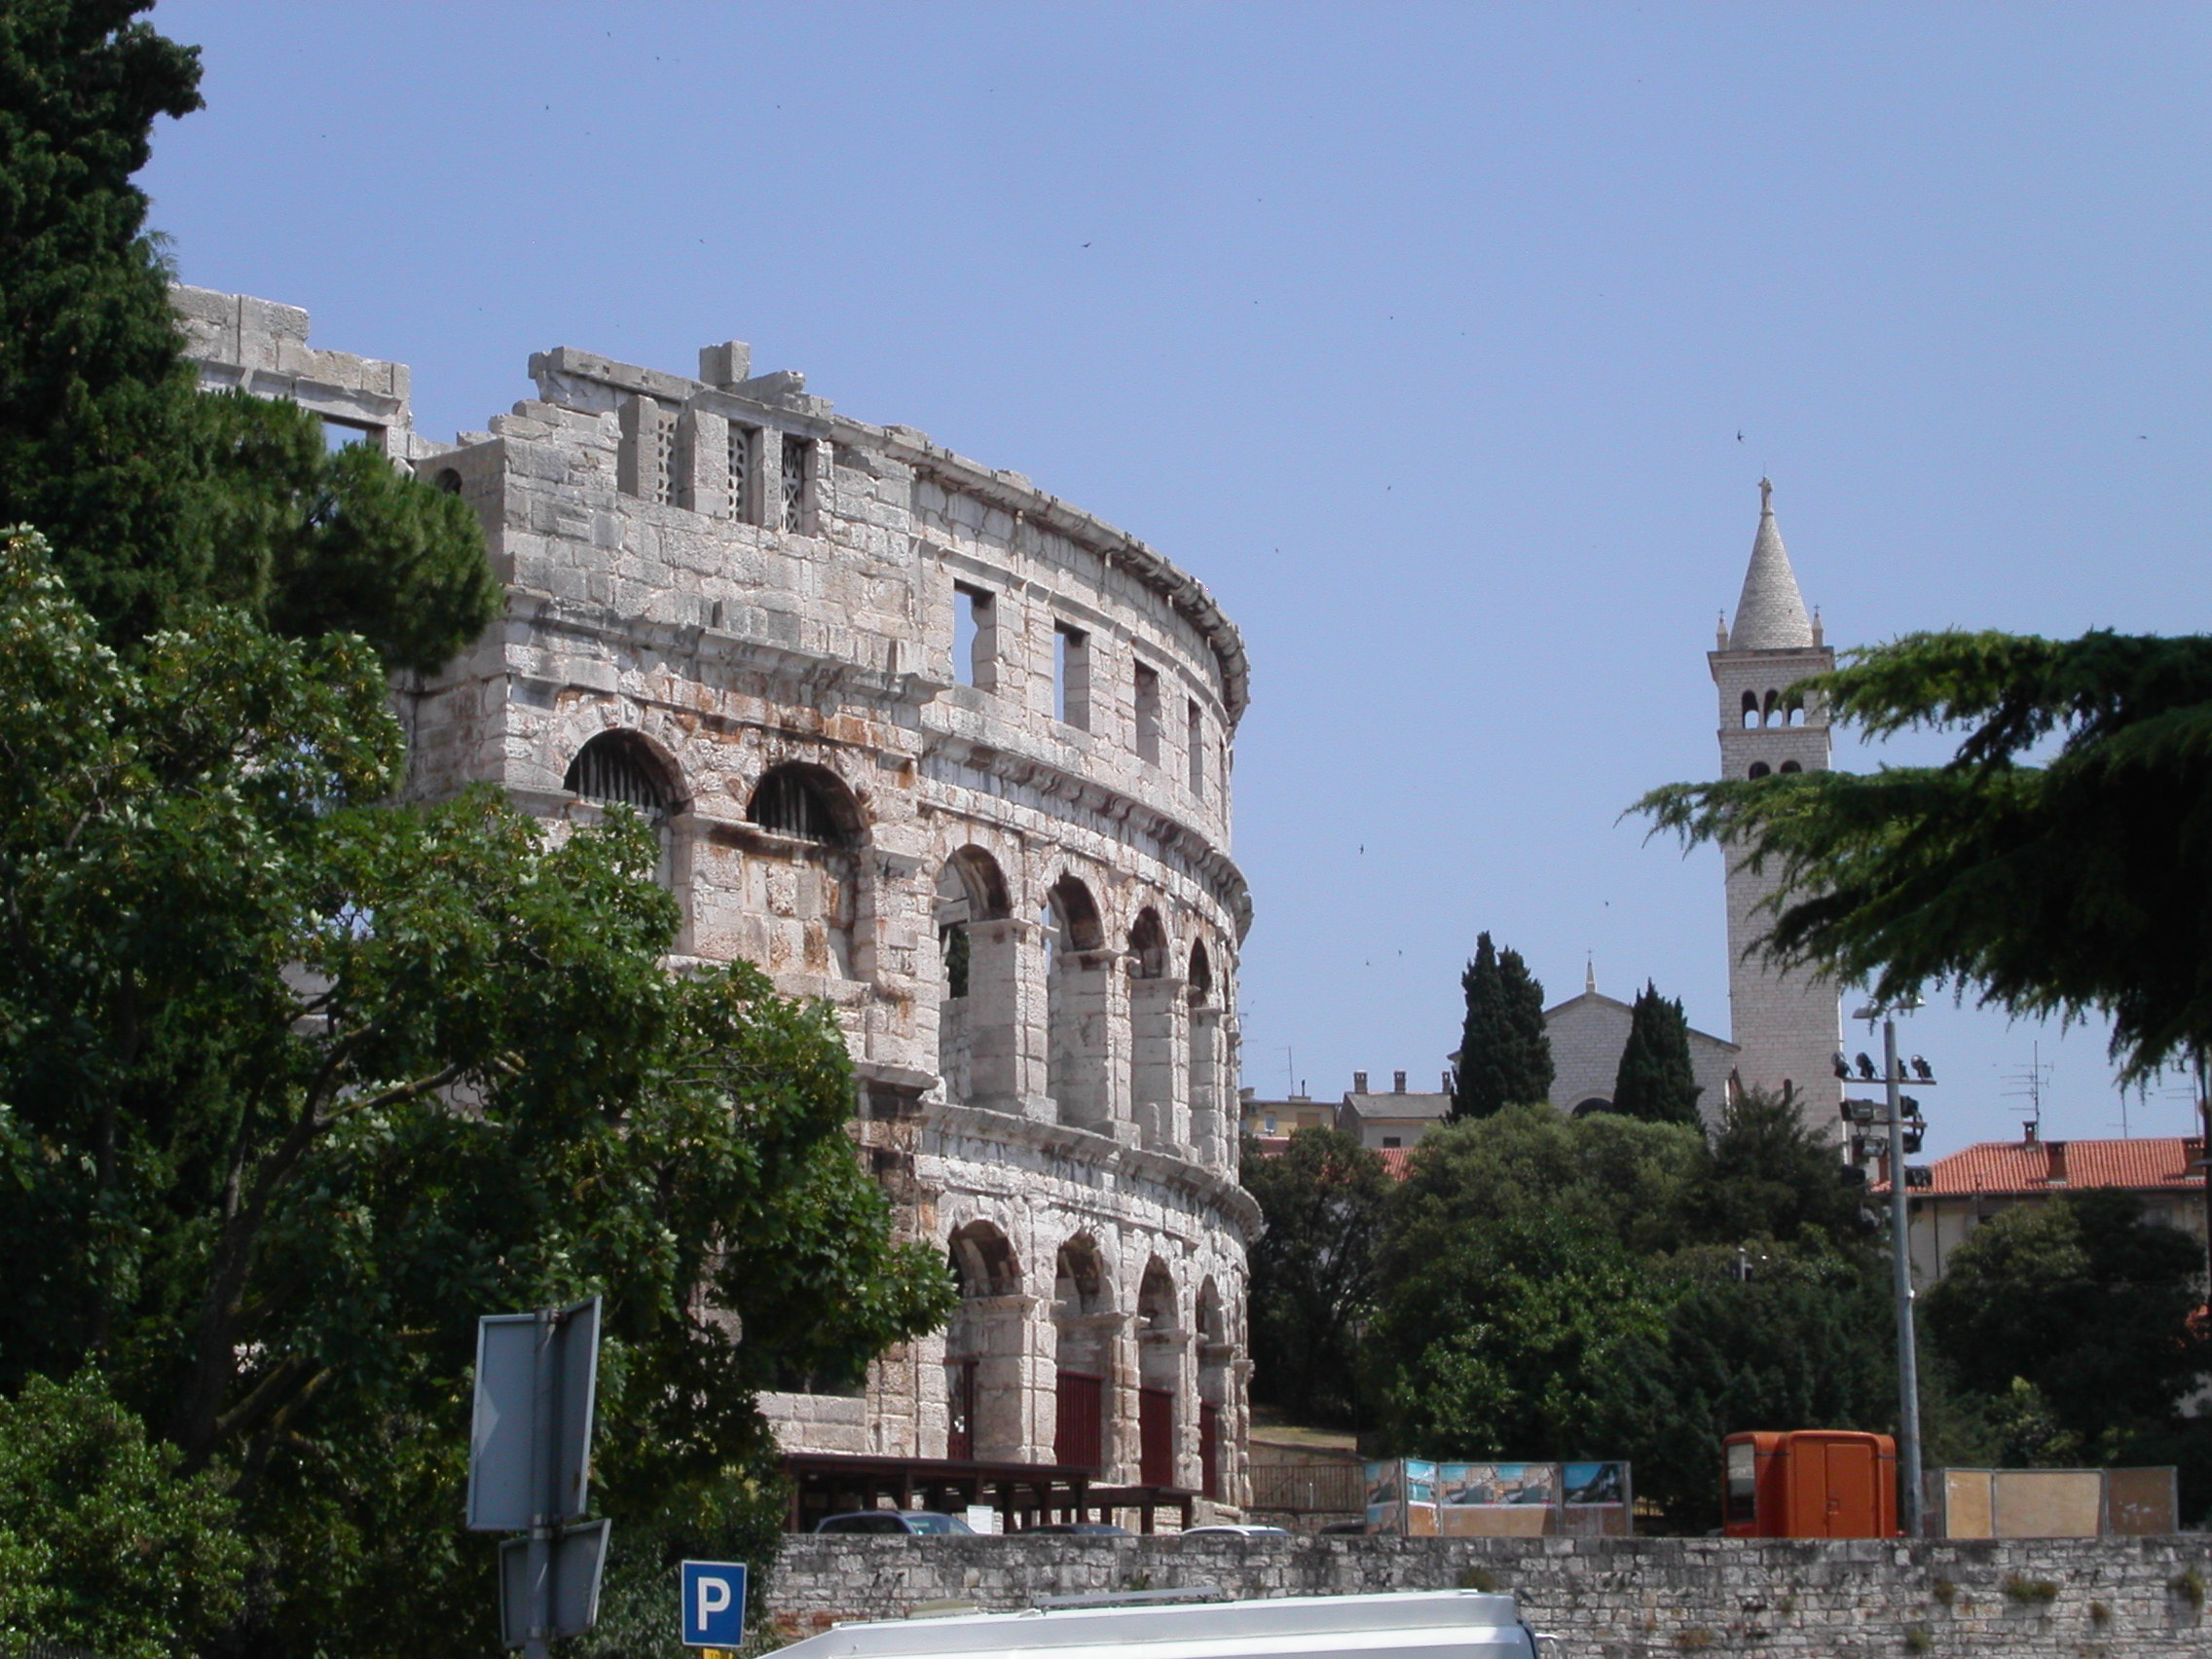 Amphitheater Arena in Pula